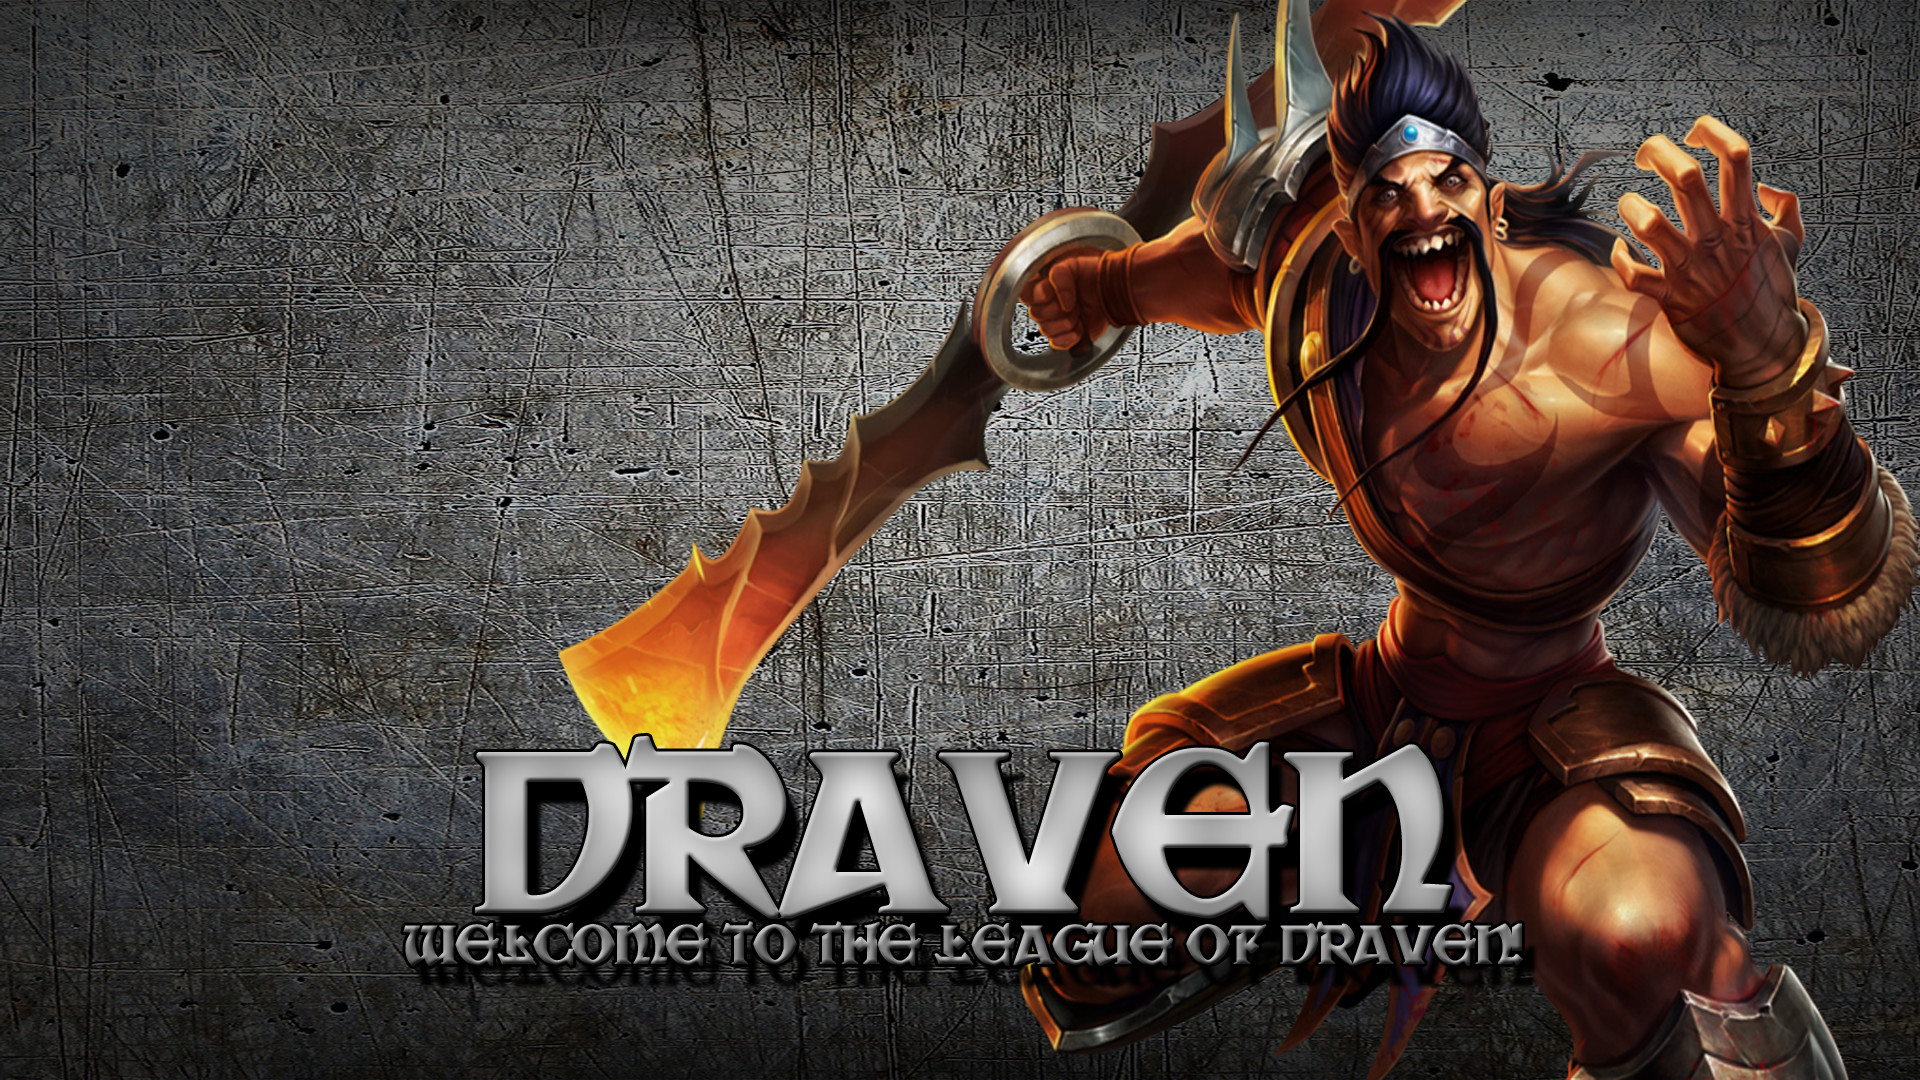 1920x1080 ... Draven (League of Legends) Wallpaper by Drengcap